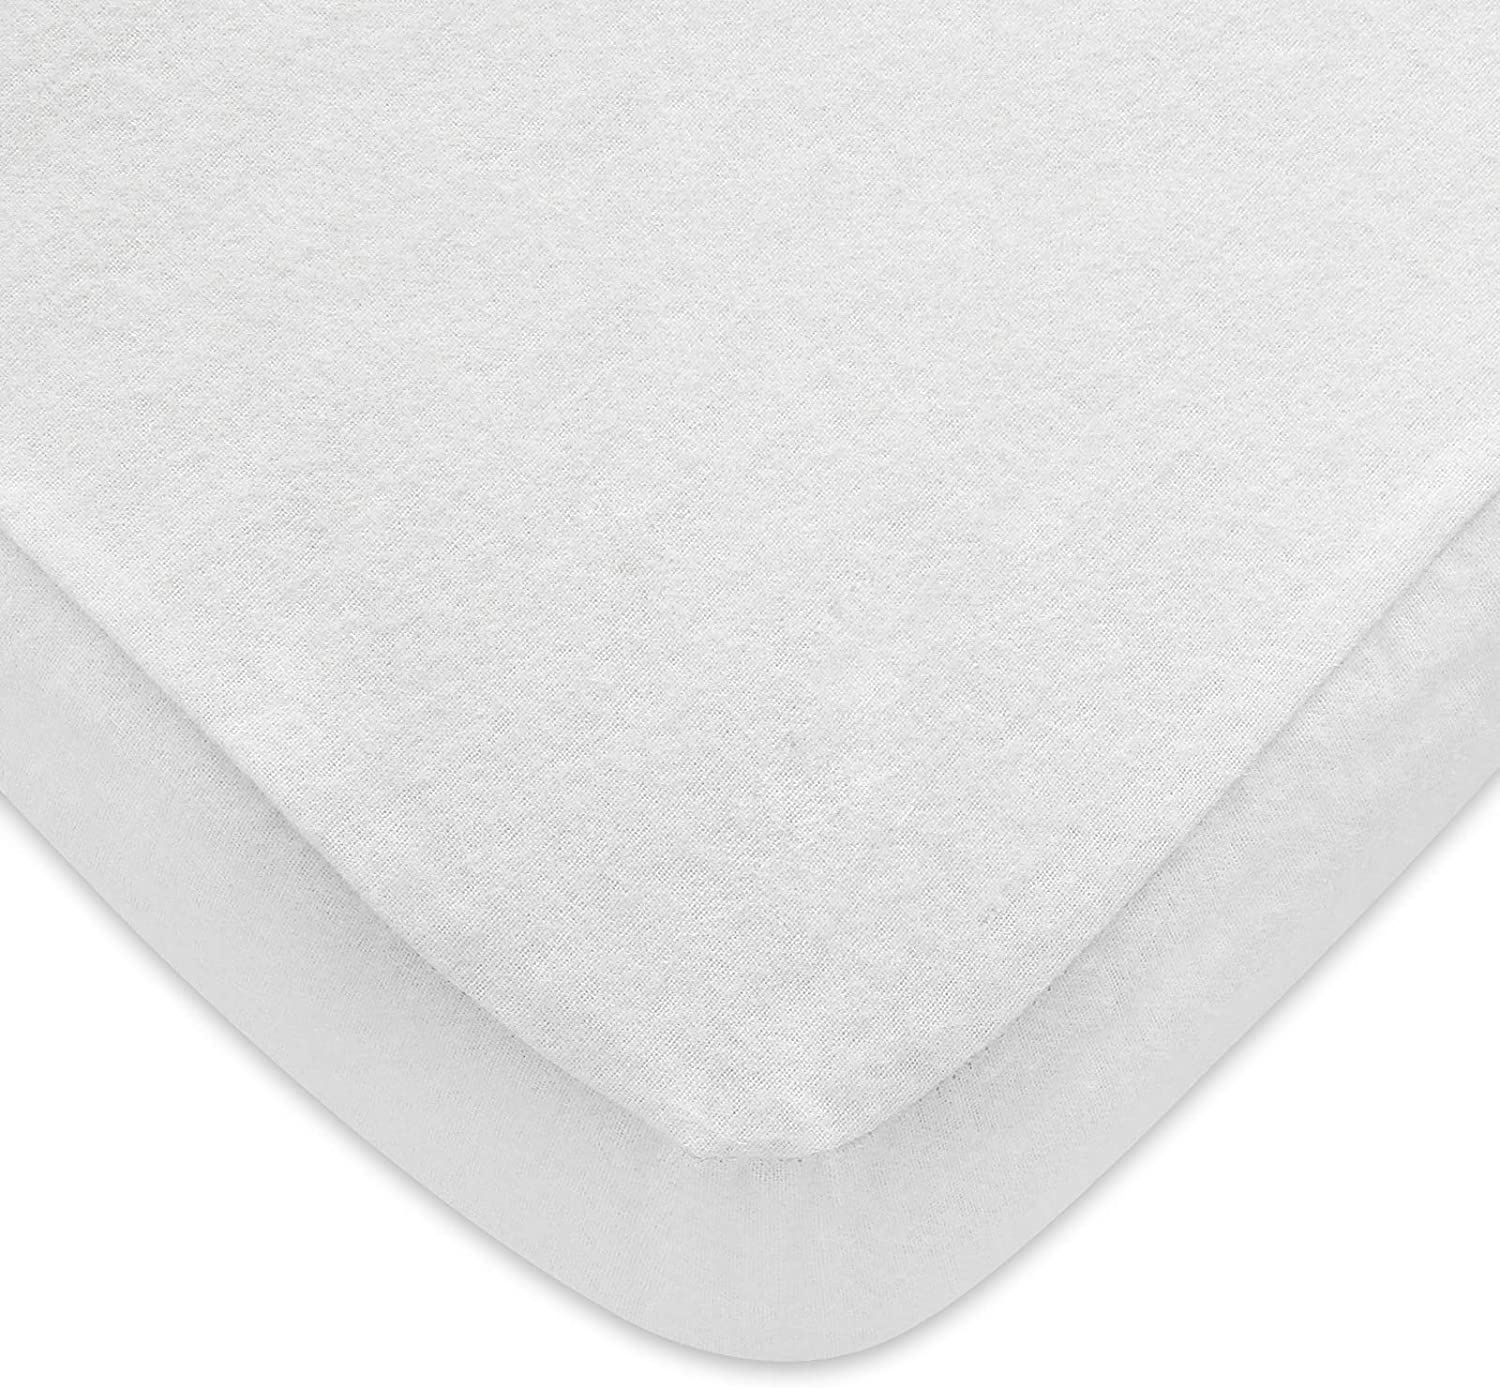 100% Cotton Flannel Pack N Play Sheet, Fitted Portable Mini Crib Sheet for Girls Boys, Ultra Soft Breathable Convertible Playard Mattress Cover, Playard Playpen Sheet, White